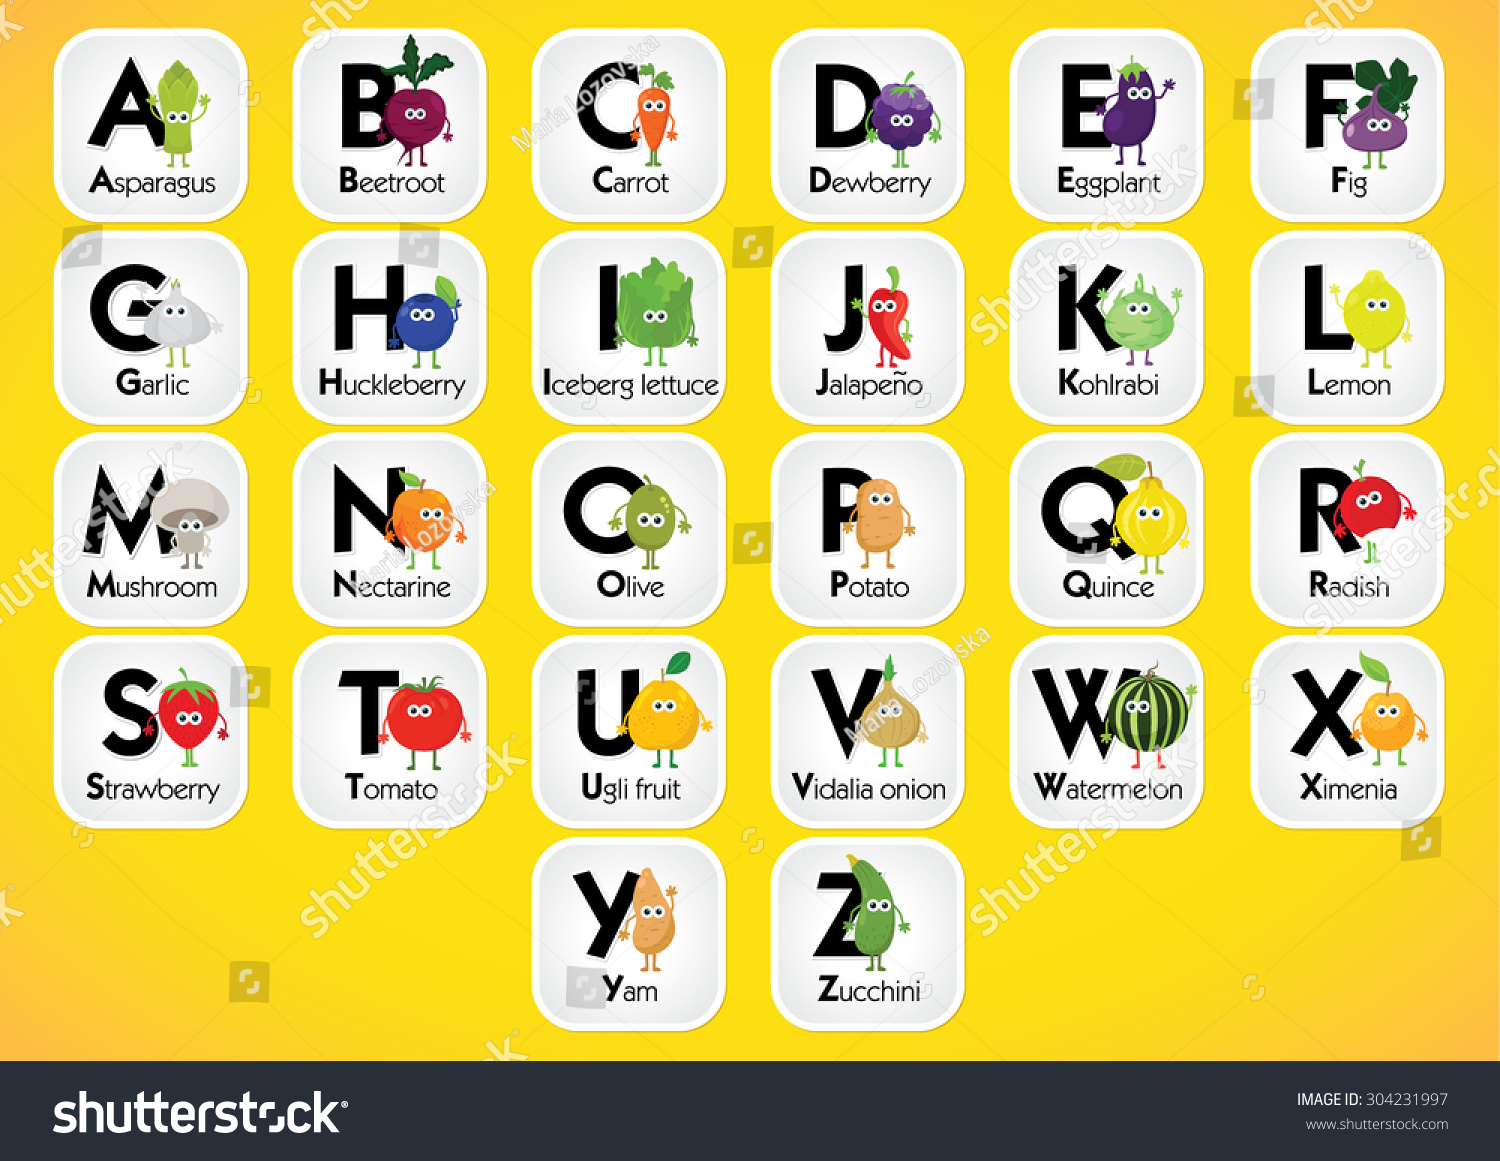 english alphabet for kids with fruits and vegetables back to school learning english food